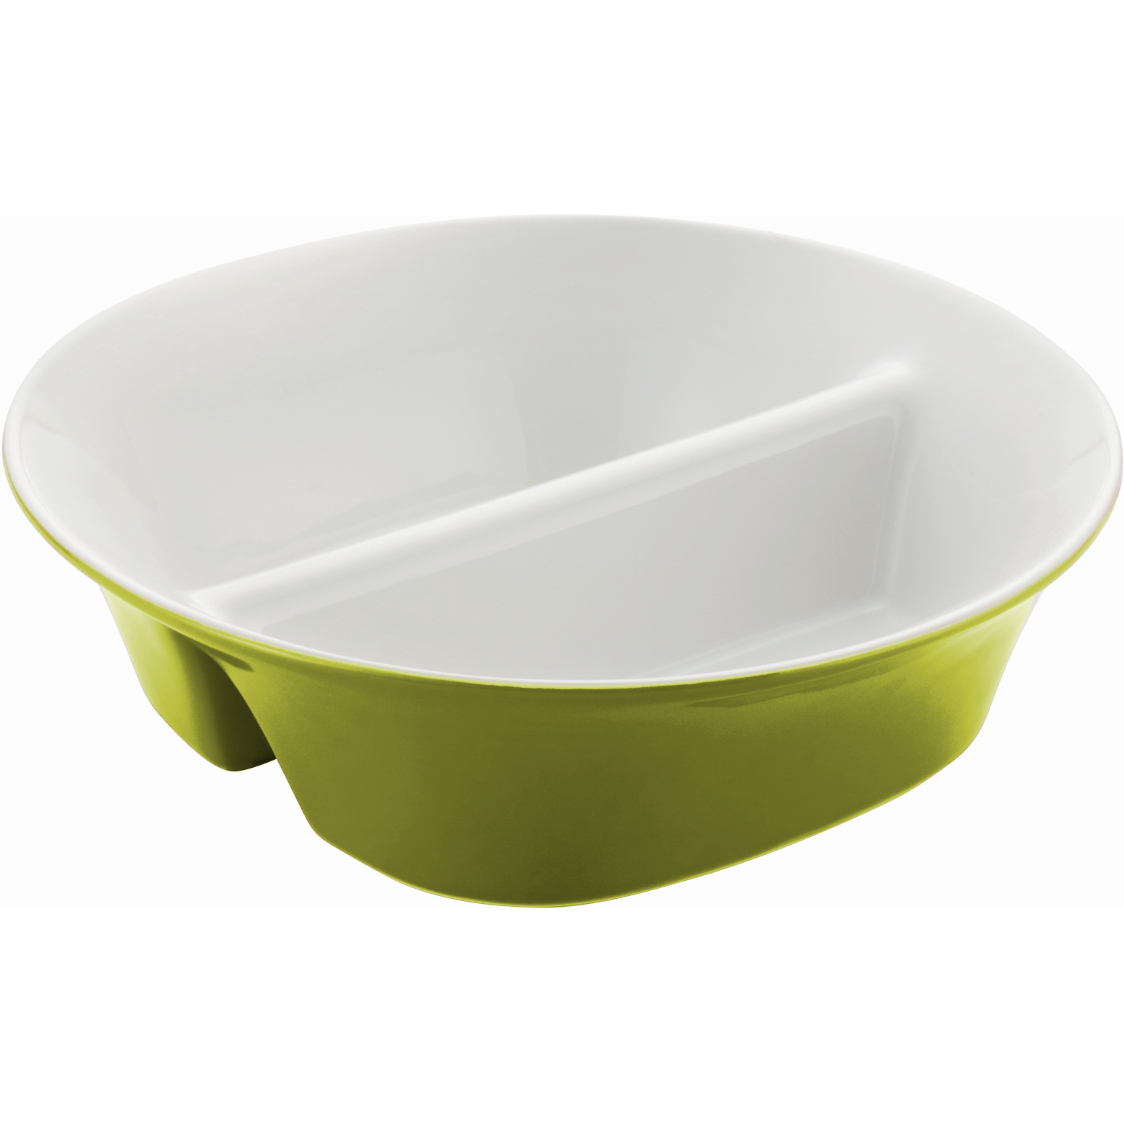 Rachael Ray Round and Square Collection Green Stoneware Divided Serving Dish, 12 Inch